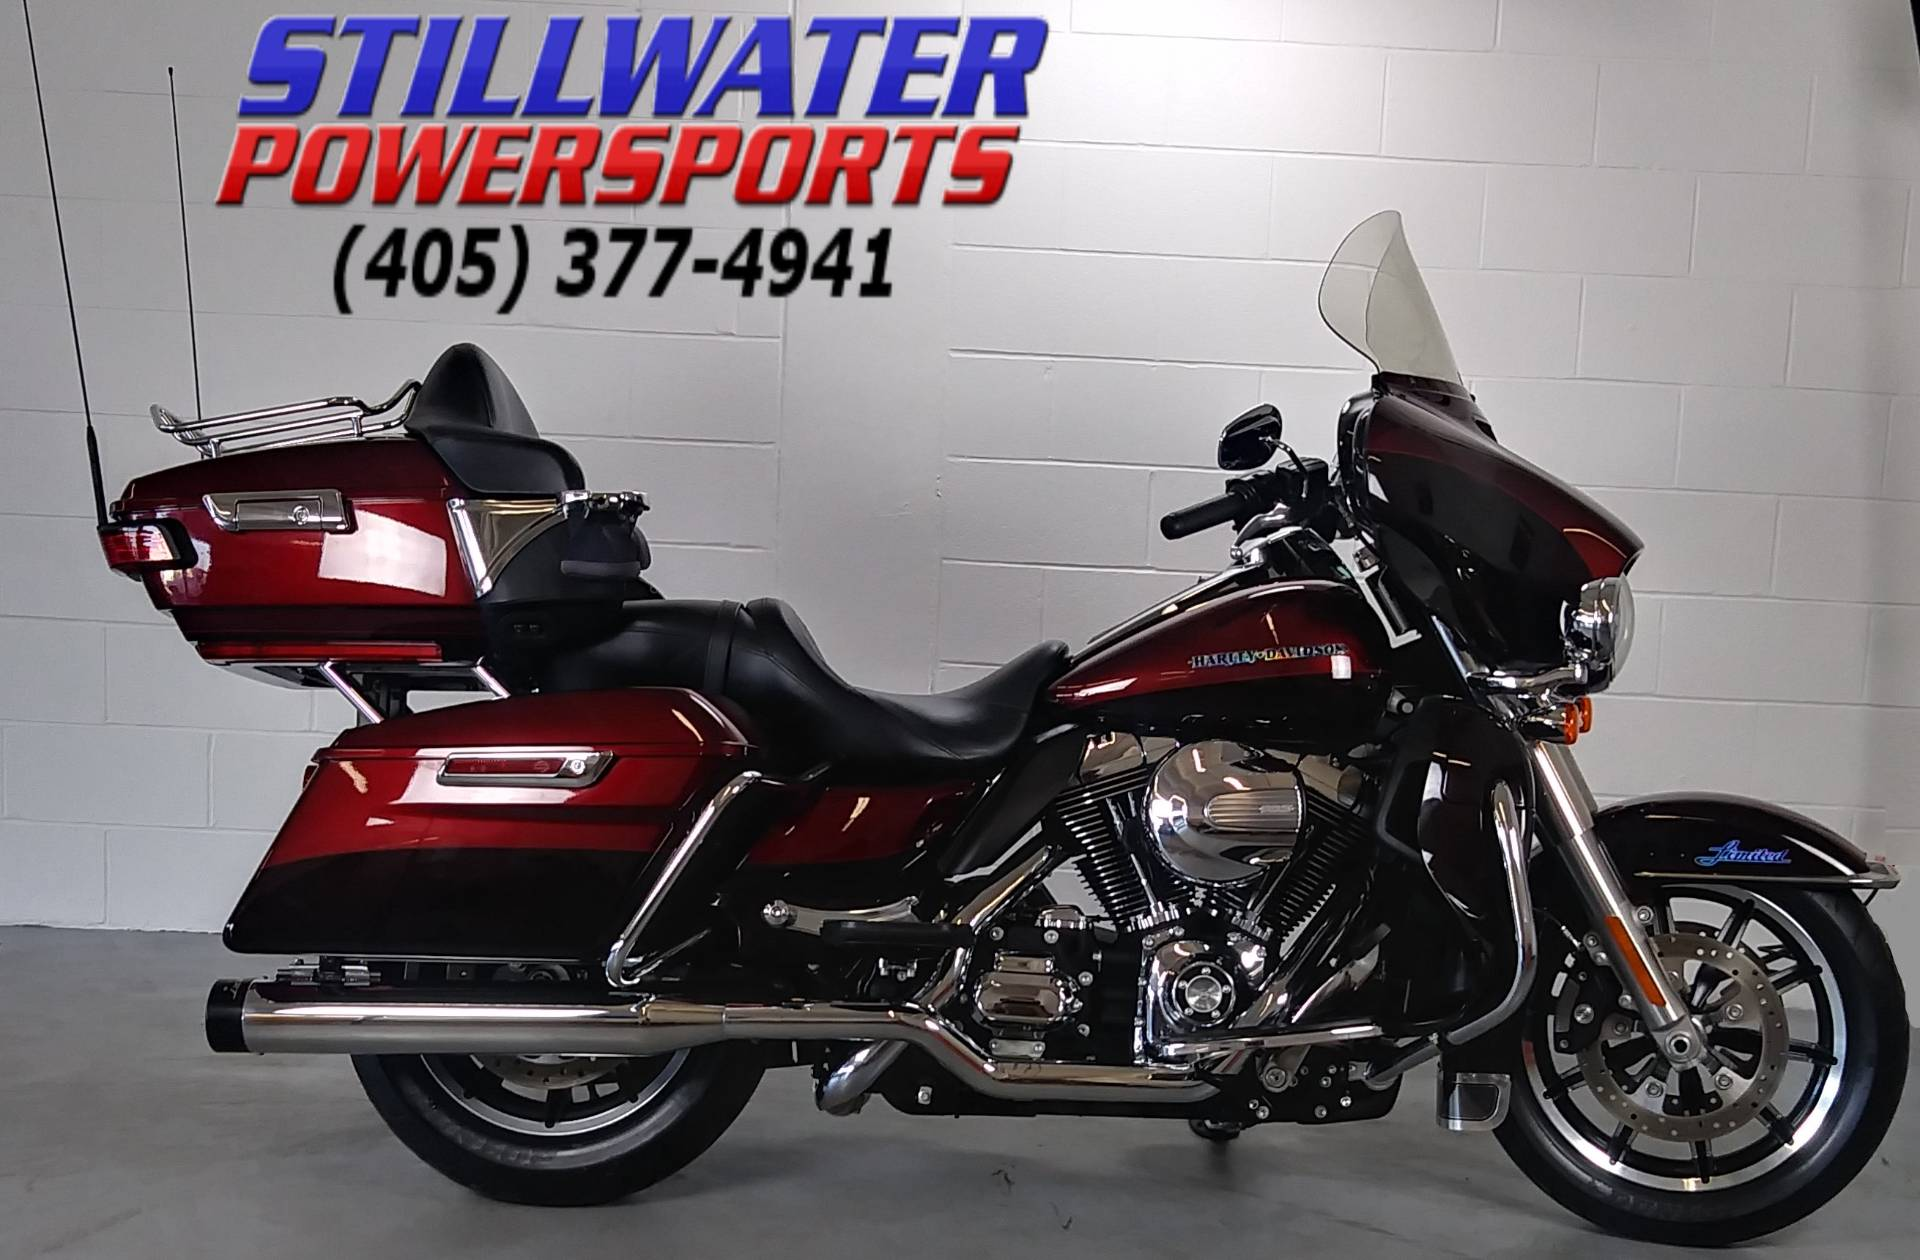 2014 Harley-Davidson Ultra Limited in Stillwater, Oklahoma - Photo 1